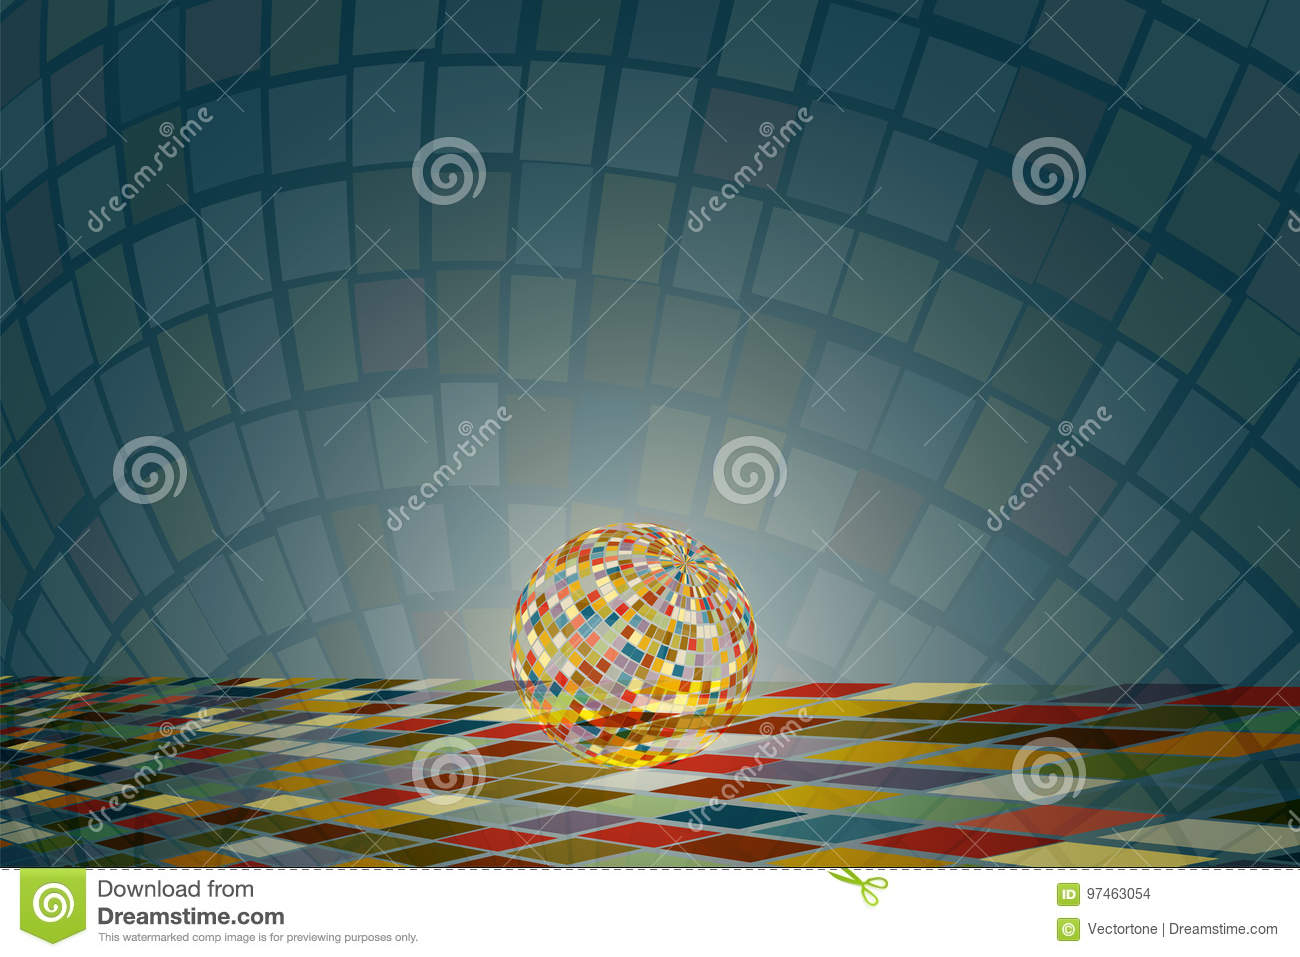 Sparkling Disco Ball On The Colorful Square Tile Floor With Colorful